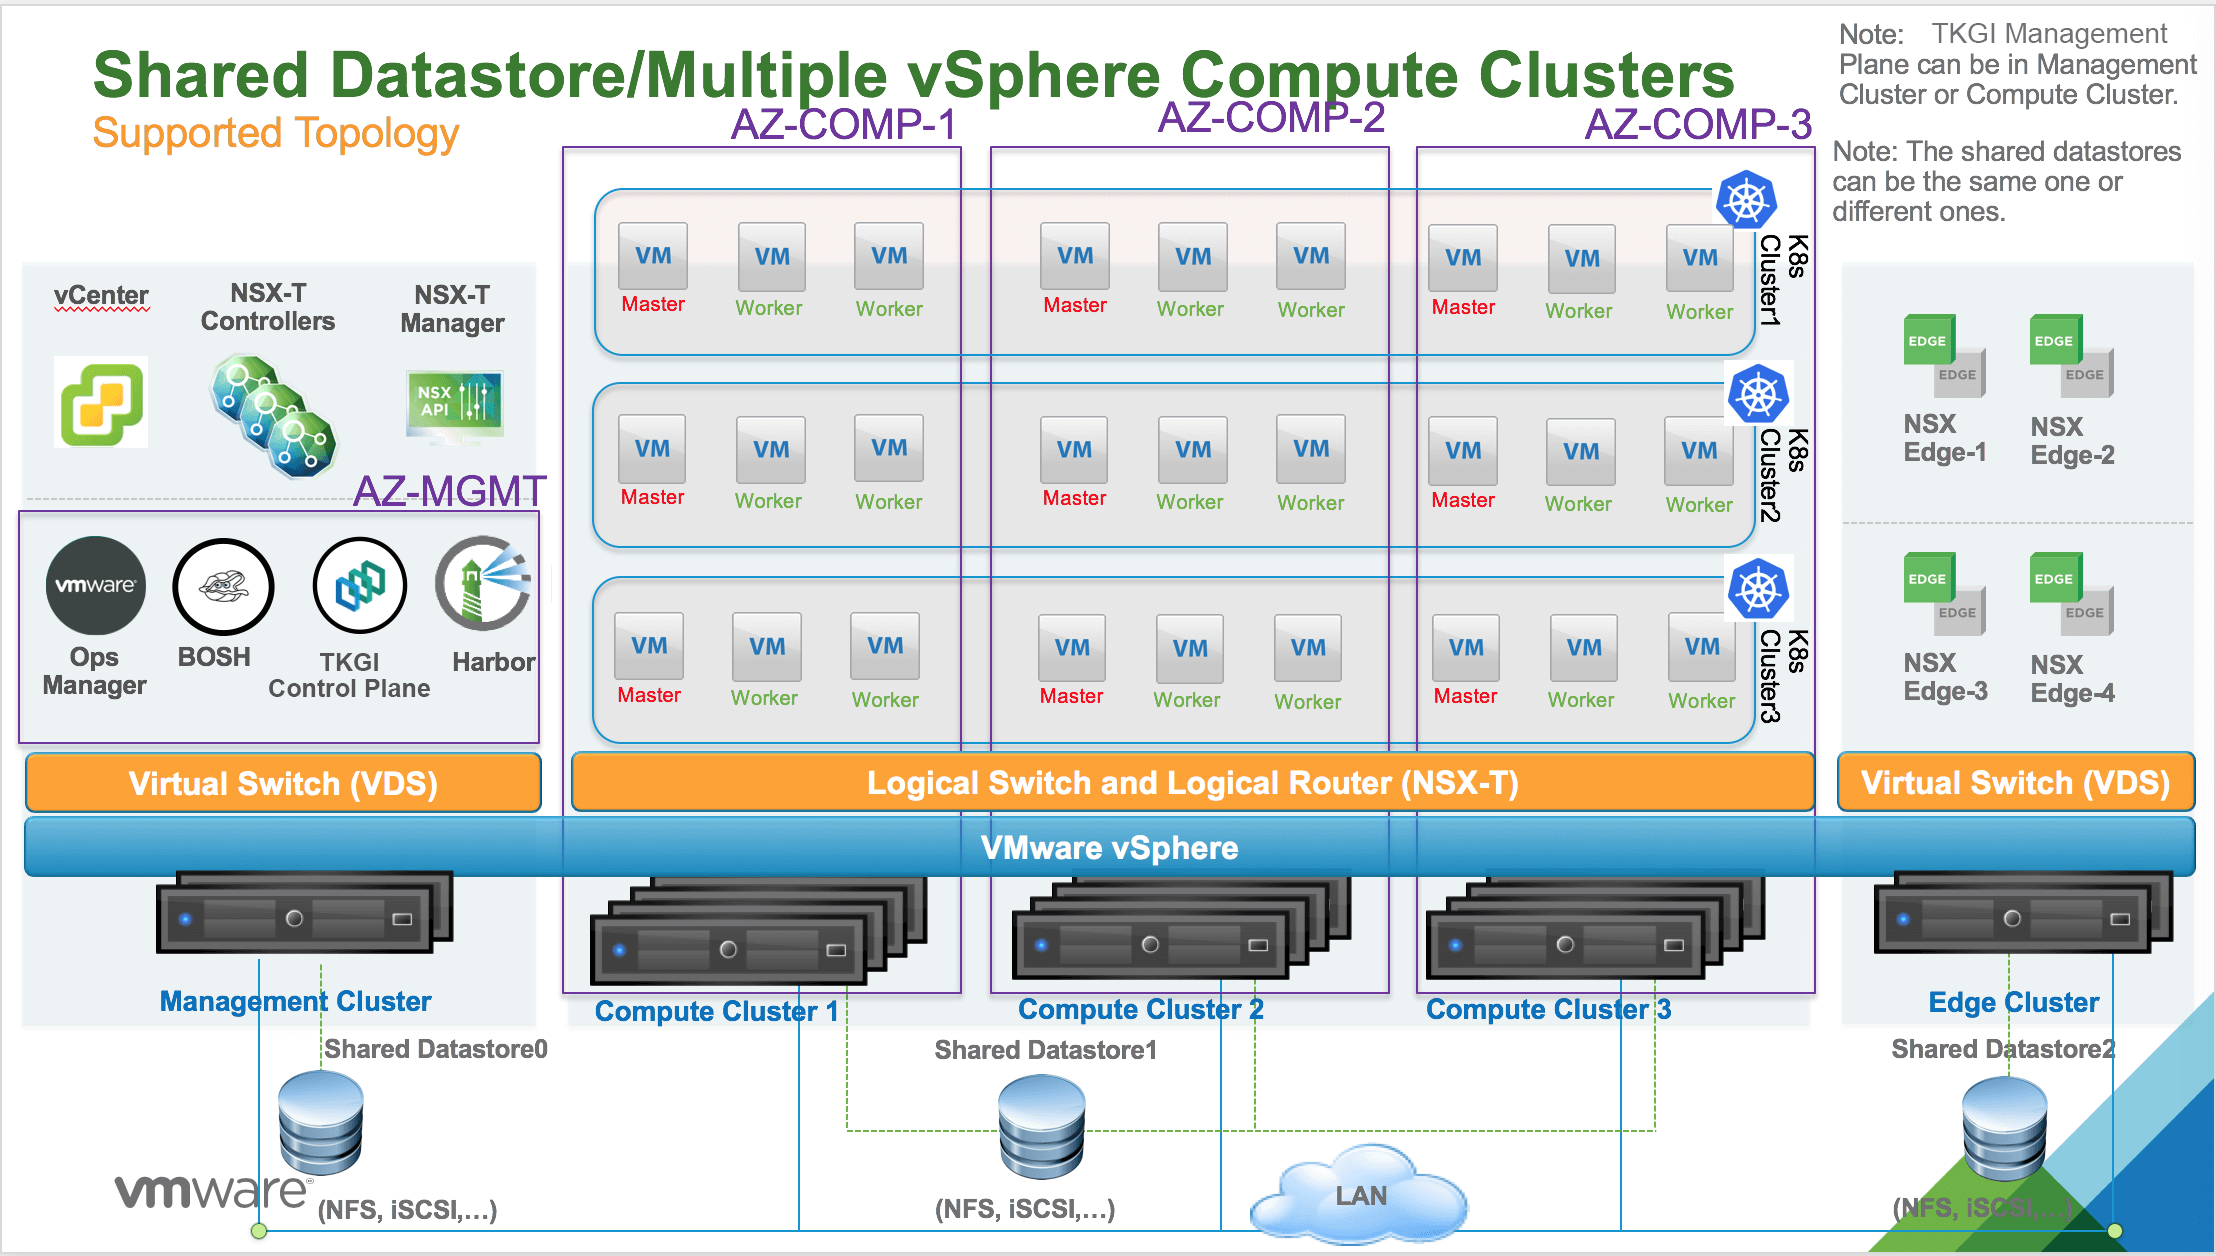 Multi vSphere compute clusters (Multi AZs) with Shared VMFS datastore